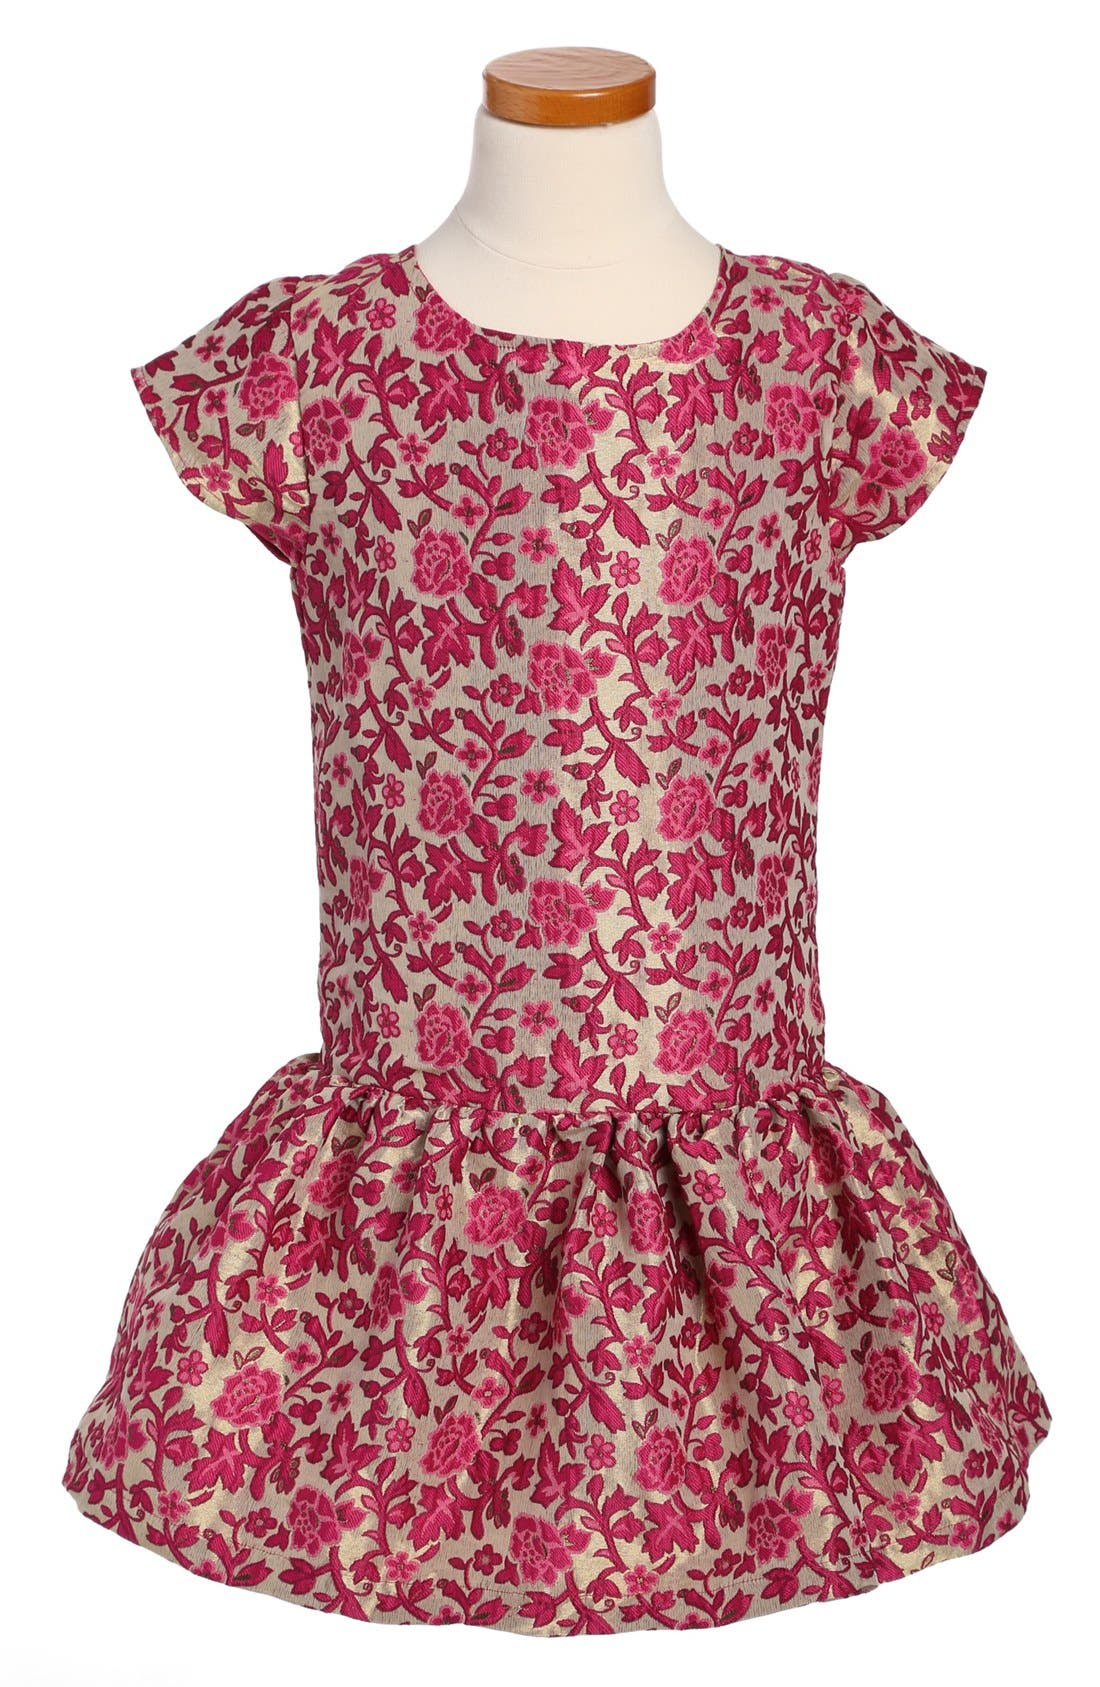 Alternate Image 1 Selected - Peek 'Annette' Dress (Toddler Girls, Little Girls & Big Girls)